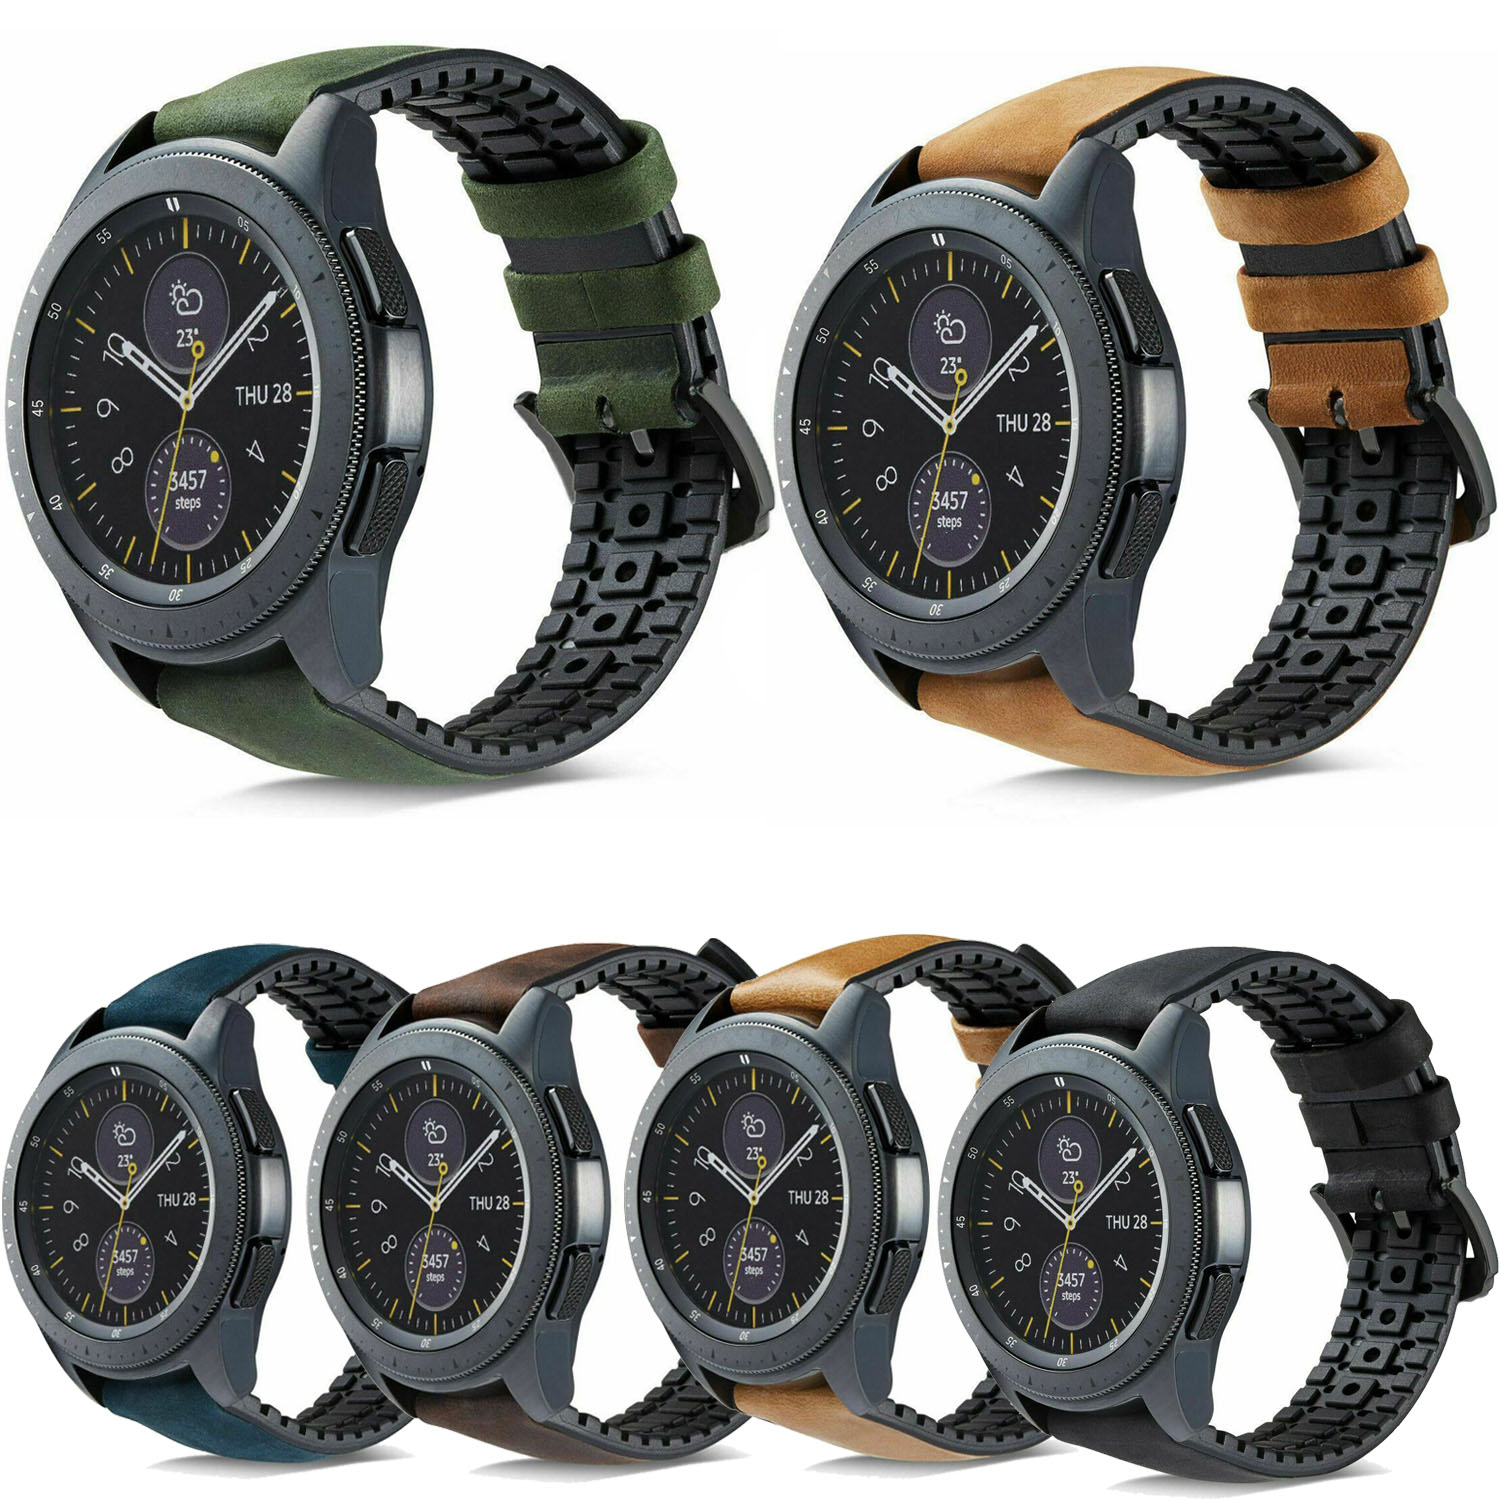 For <font><b>Samsung</b></font> Gear S2 S3 Classic Frontier Silicone <font><b>Leather</b></font> Band Bracelet For Huawei Watch GT Galaxy Watch <font><b>46mm</b></font> 42mm Strap Belt image